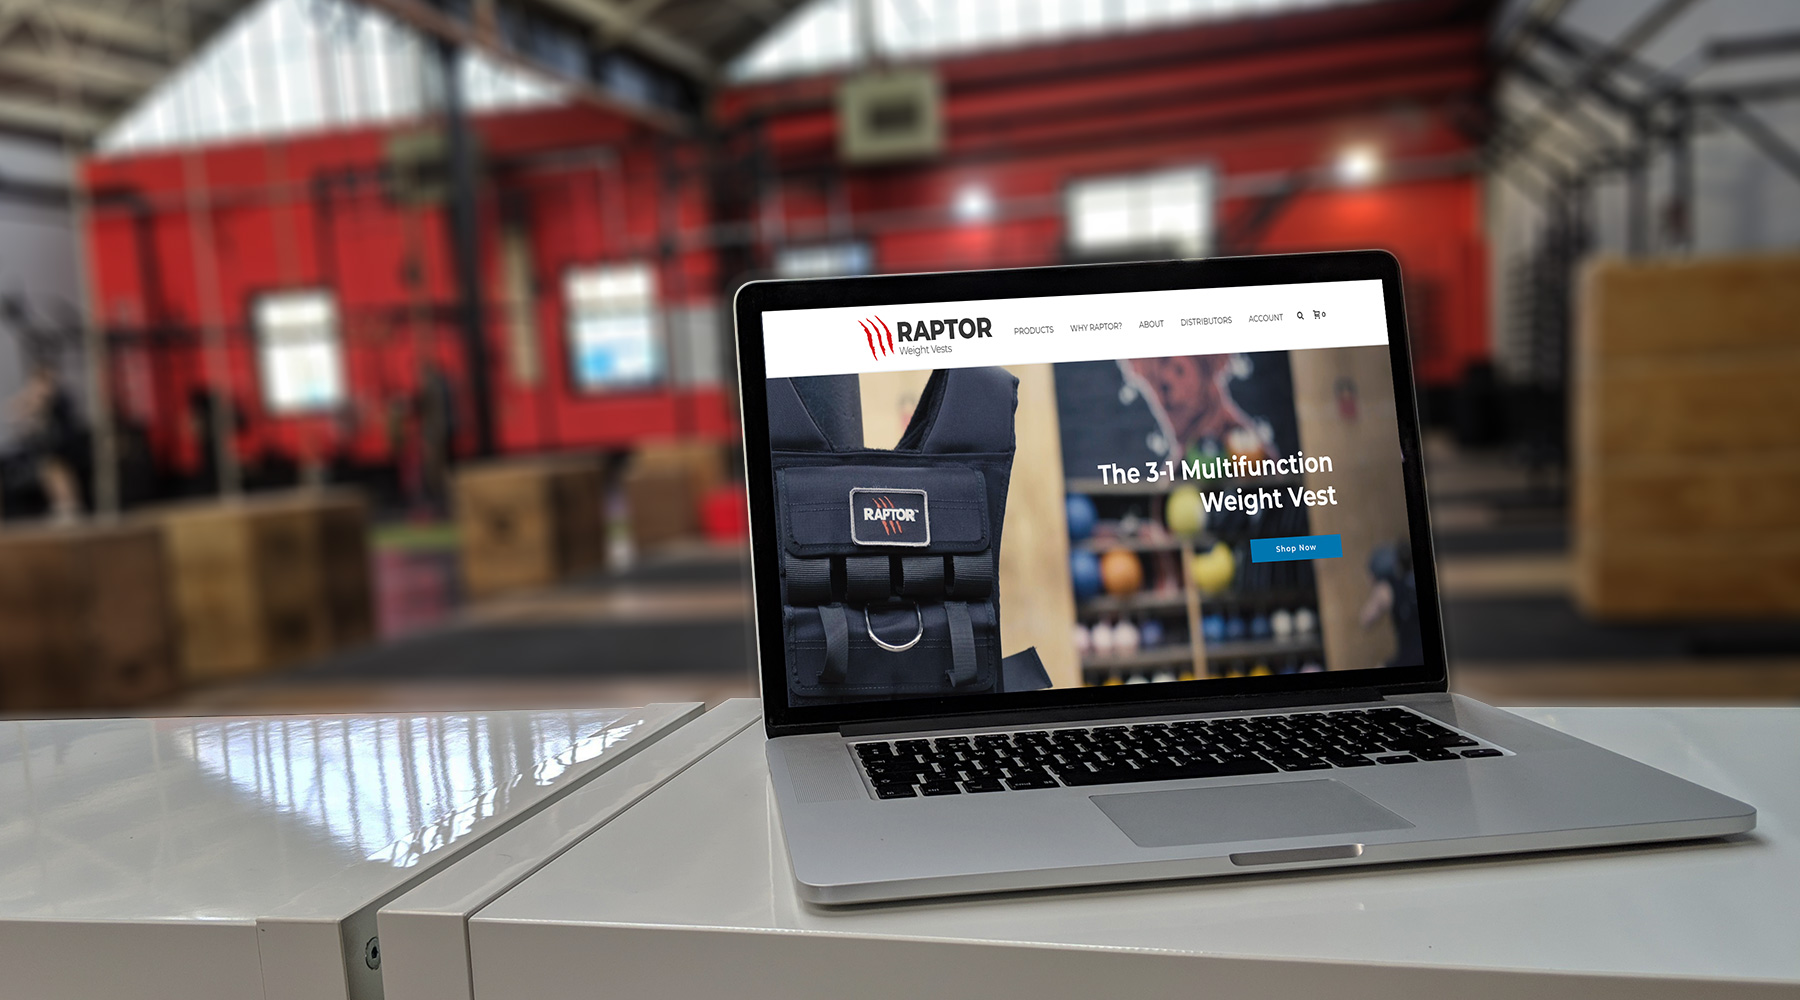 Mobile phones showcasing the ecommerce features of raptor weight vests